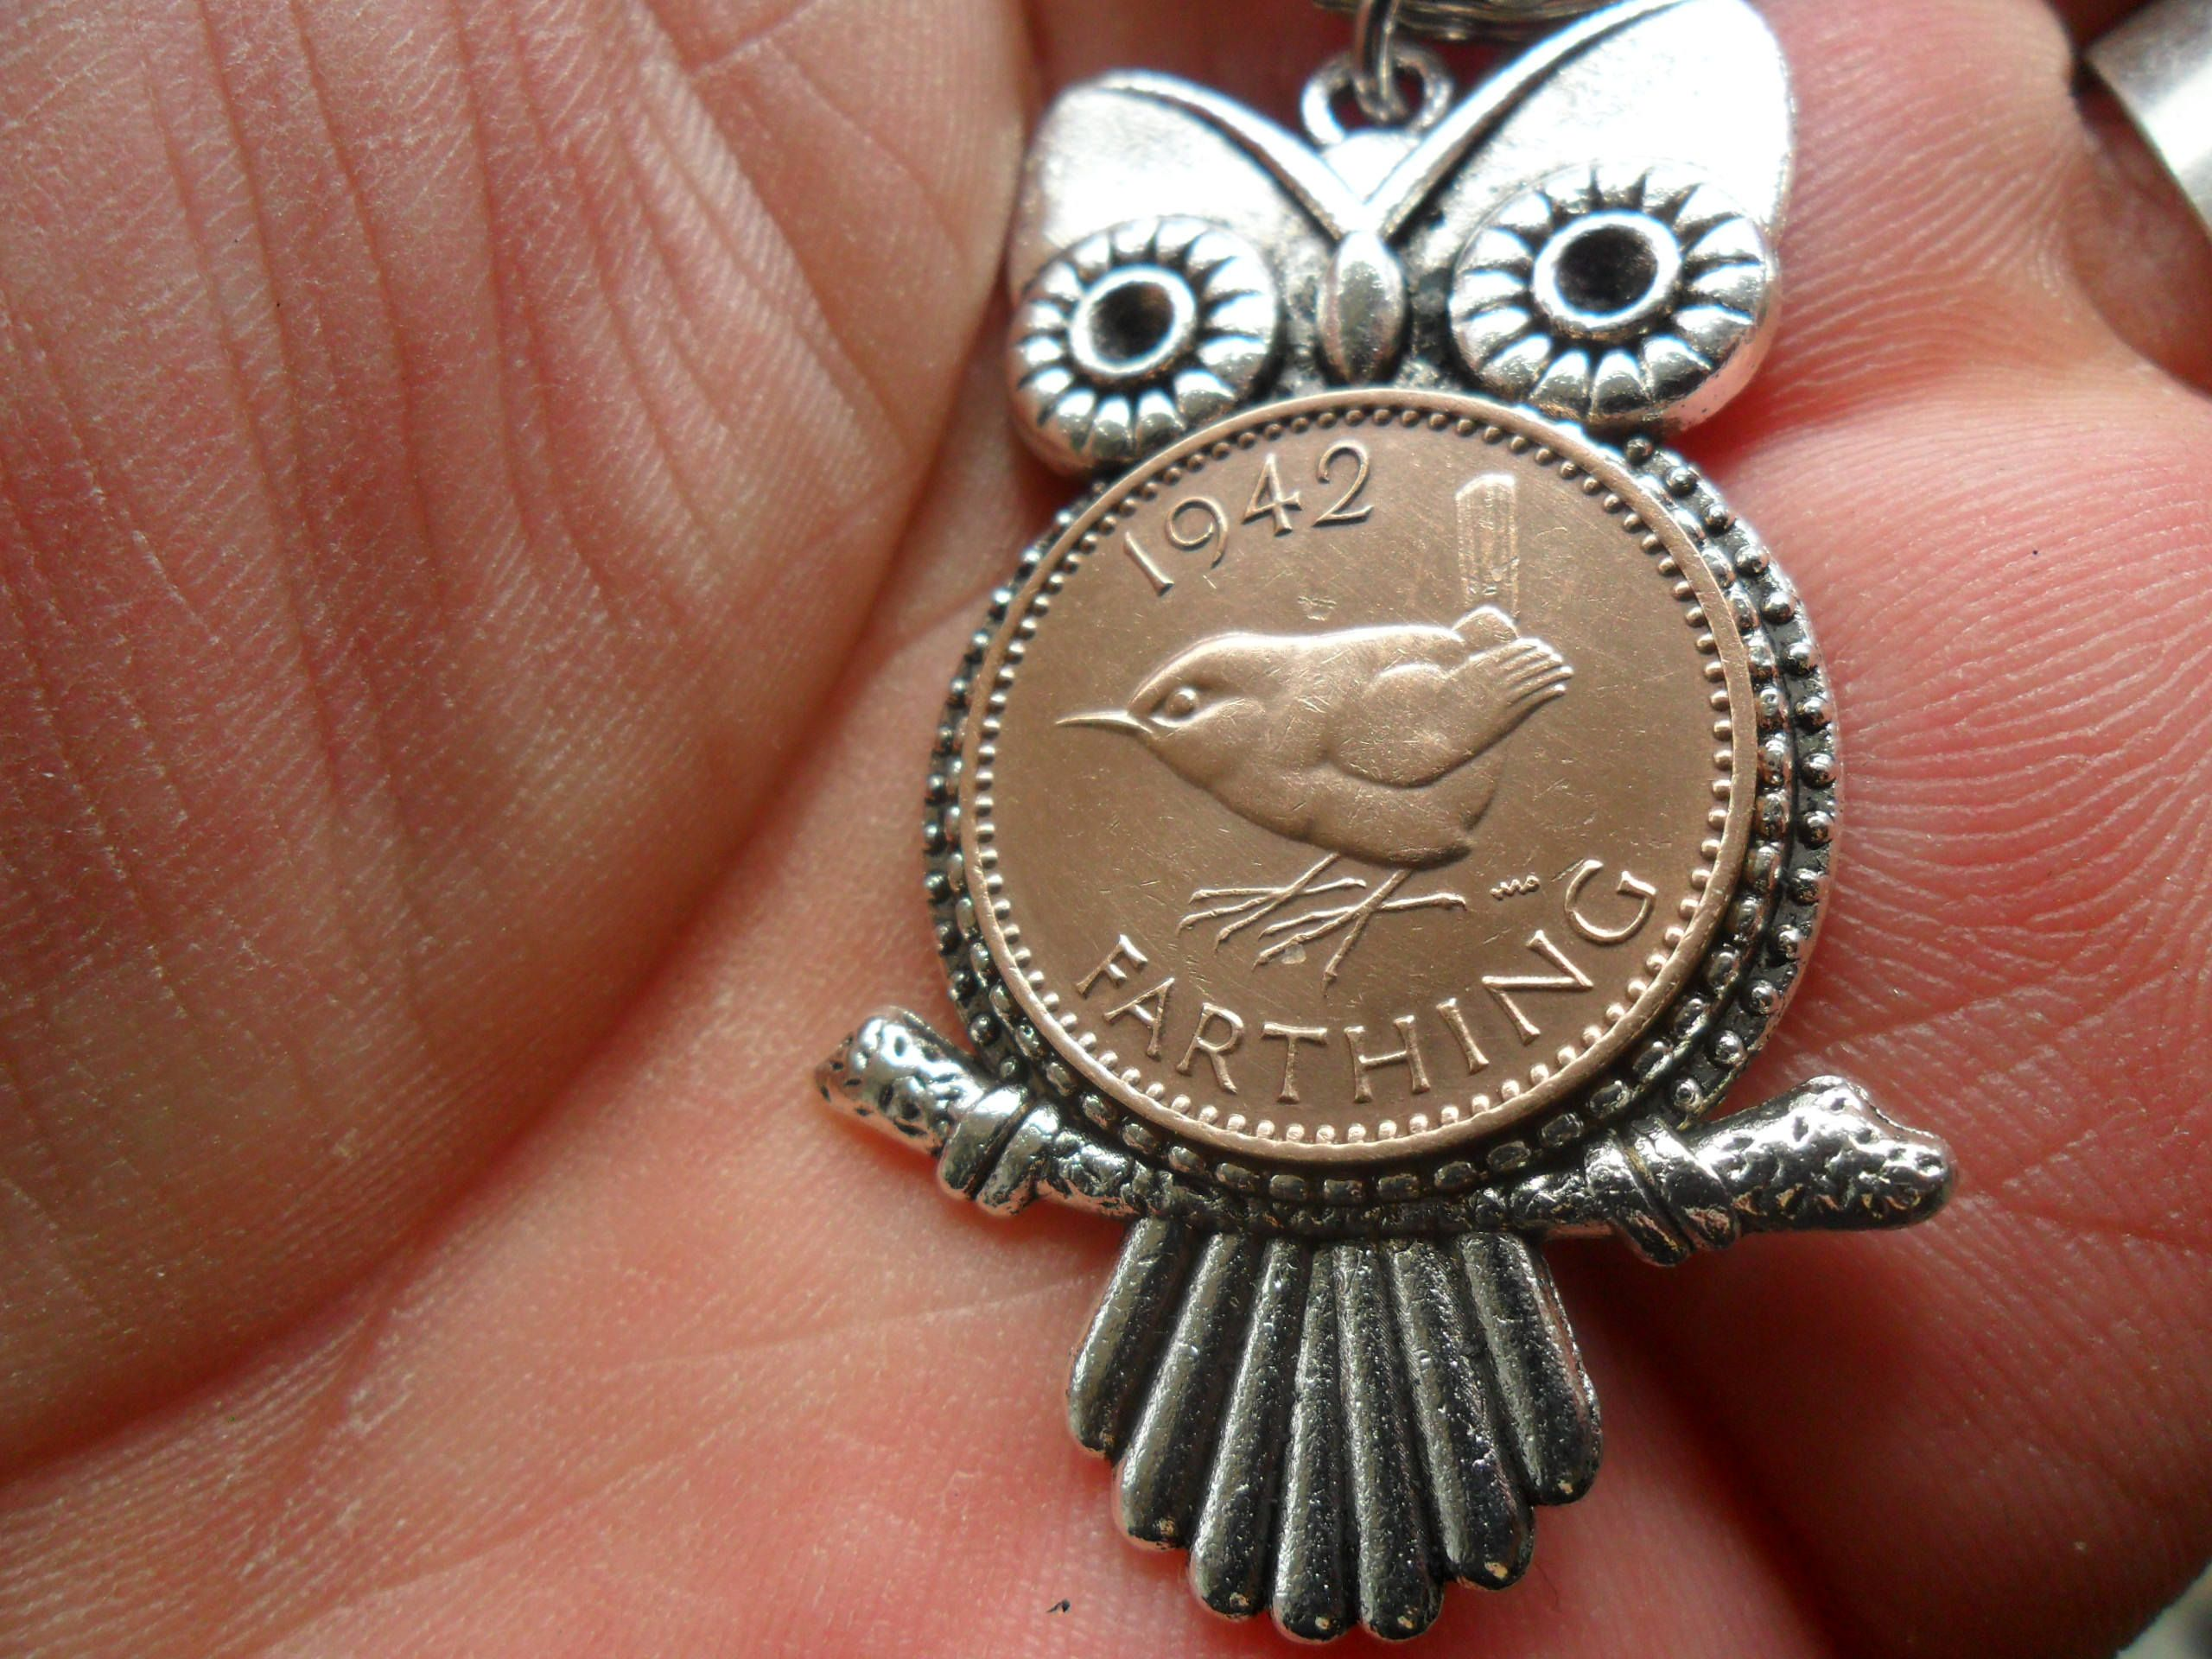 75th Birthday Gift Owl Keyring With British 1943 Bird Coin For A Woman Man Present By Staffscoins On Etsy